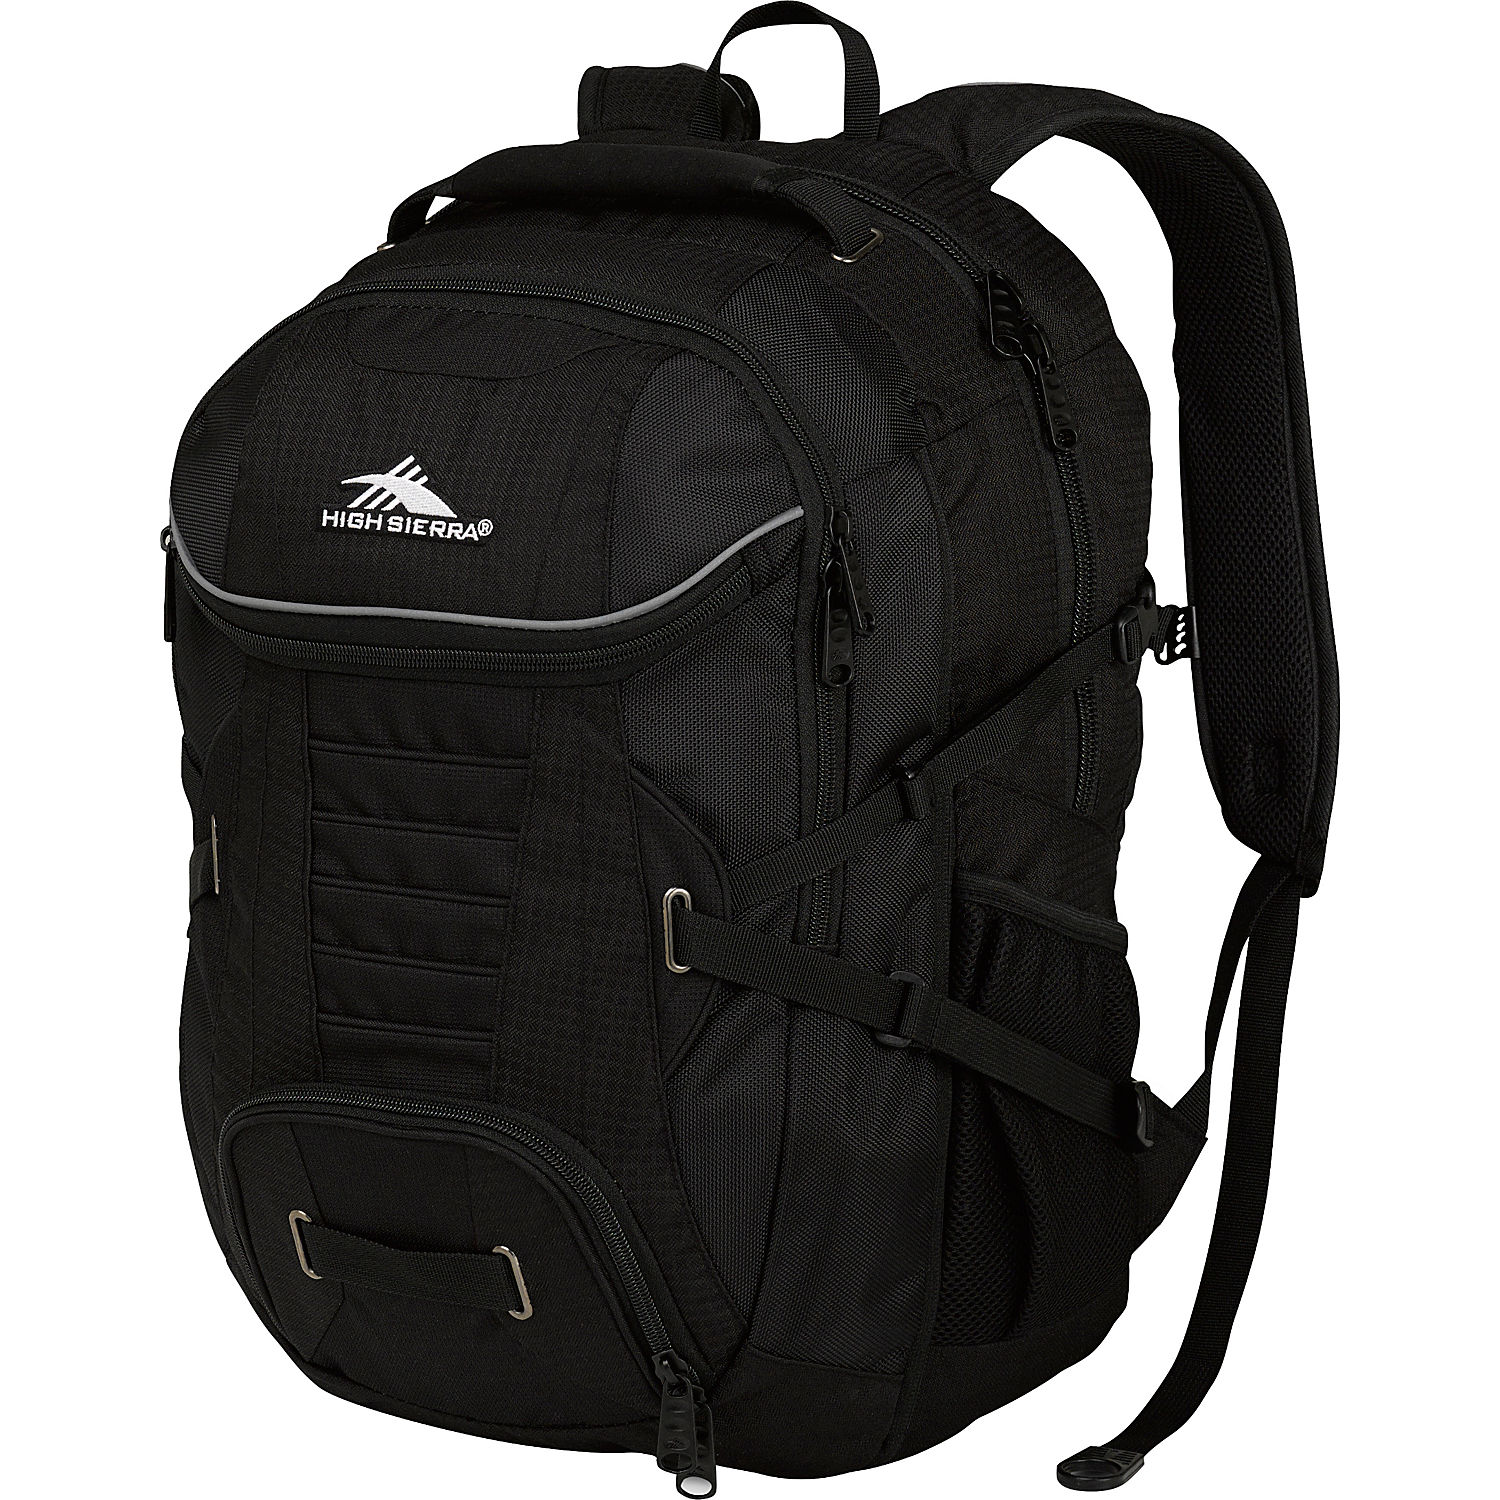 Free Shipping with $50 purchase. From young chidlren to college students, customers have relied on eacvuazs.ga's school backpacks and bags for decades. Our durable packs are loaded with features.